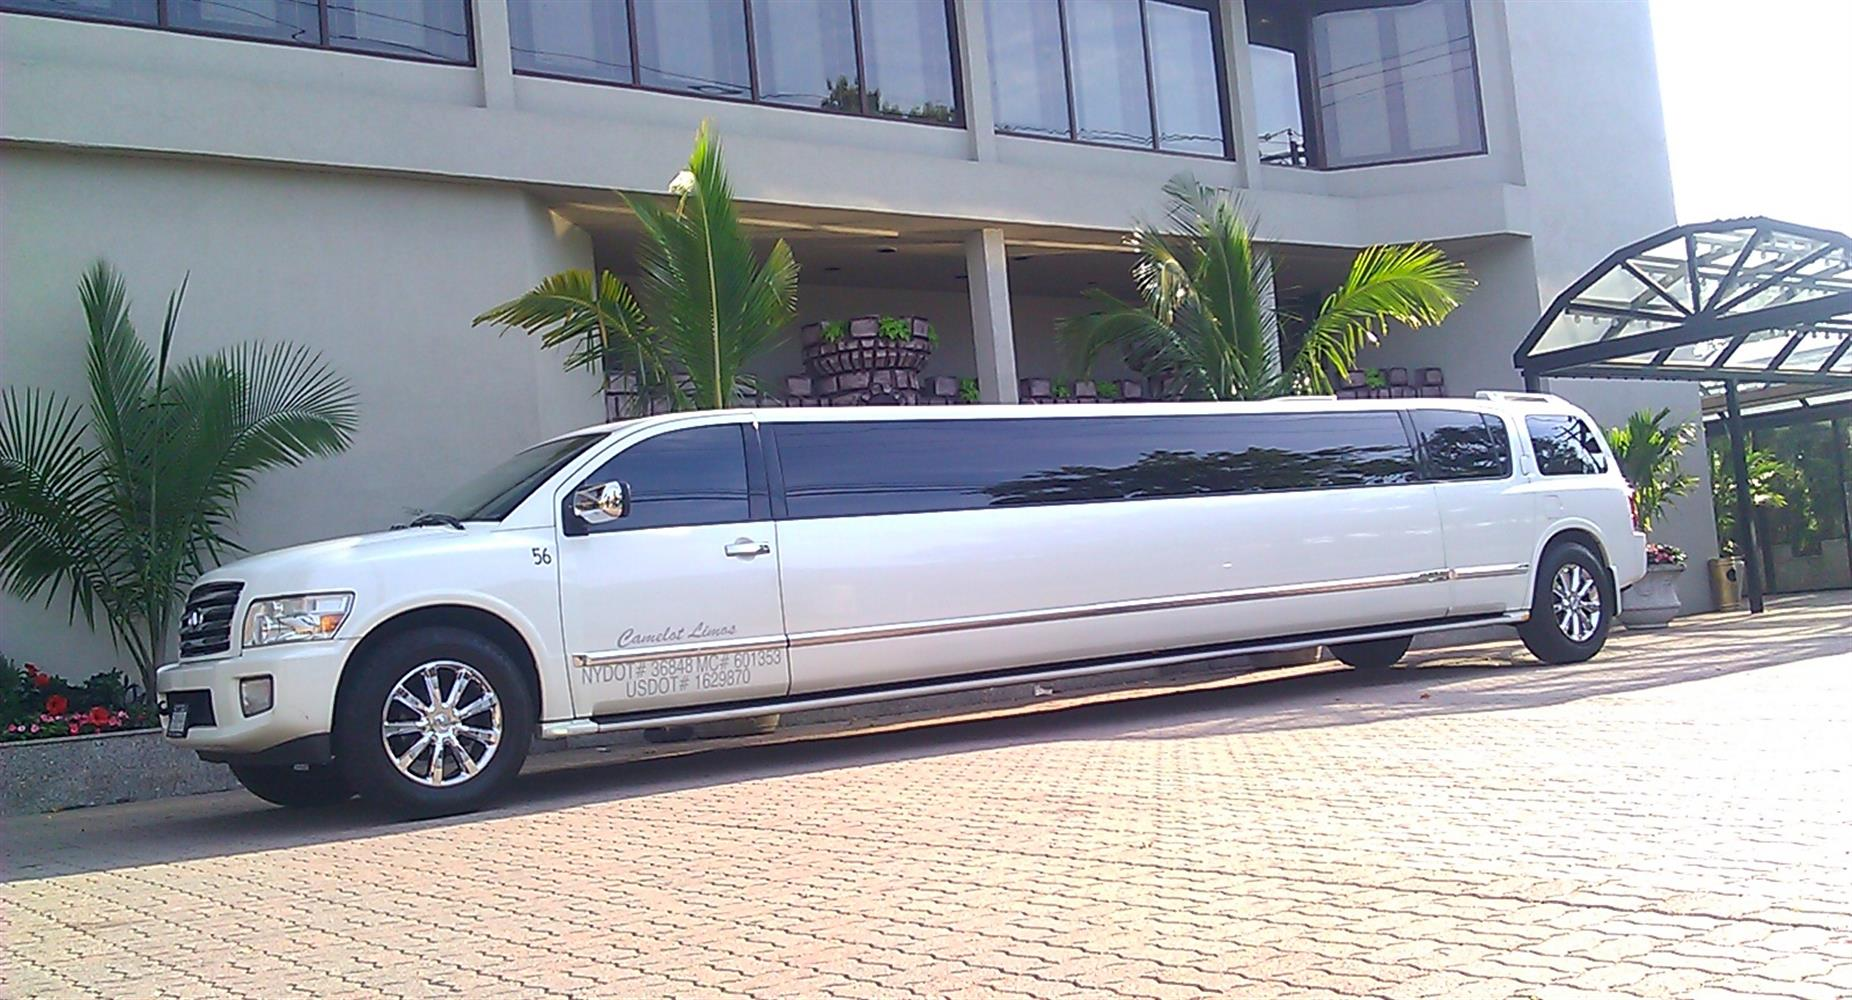 Camelot Specialty Limos Long Island Luxury Weddings